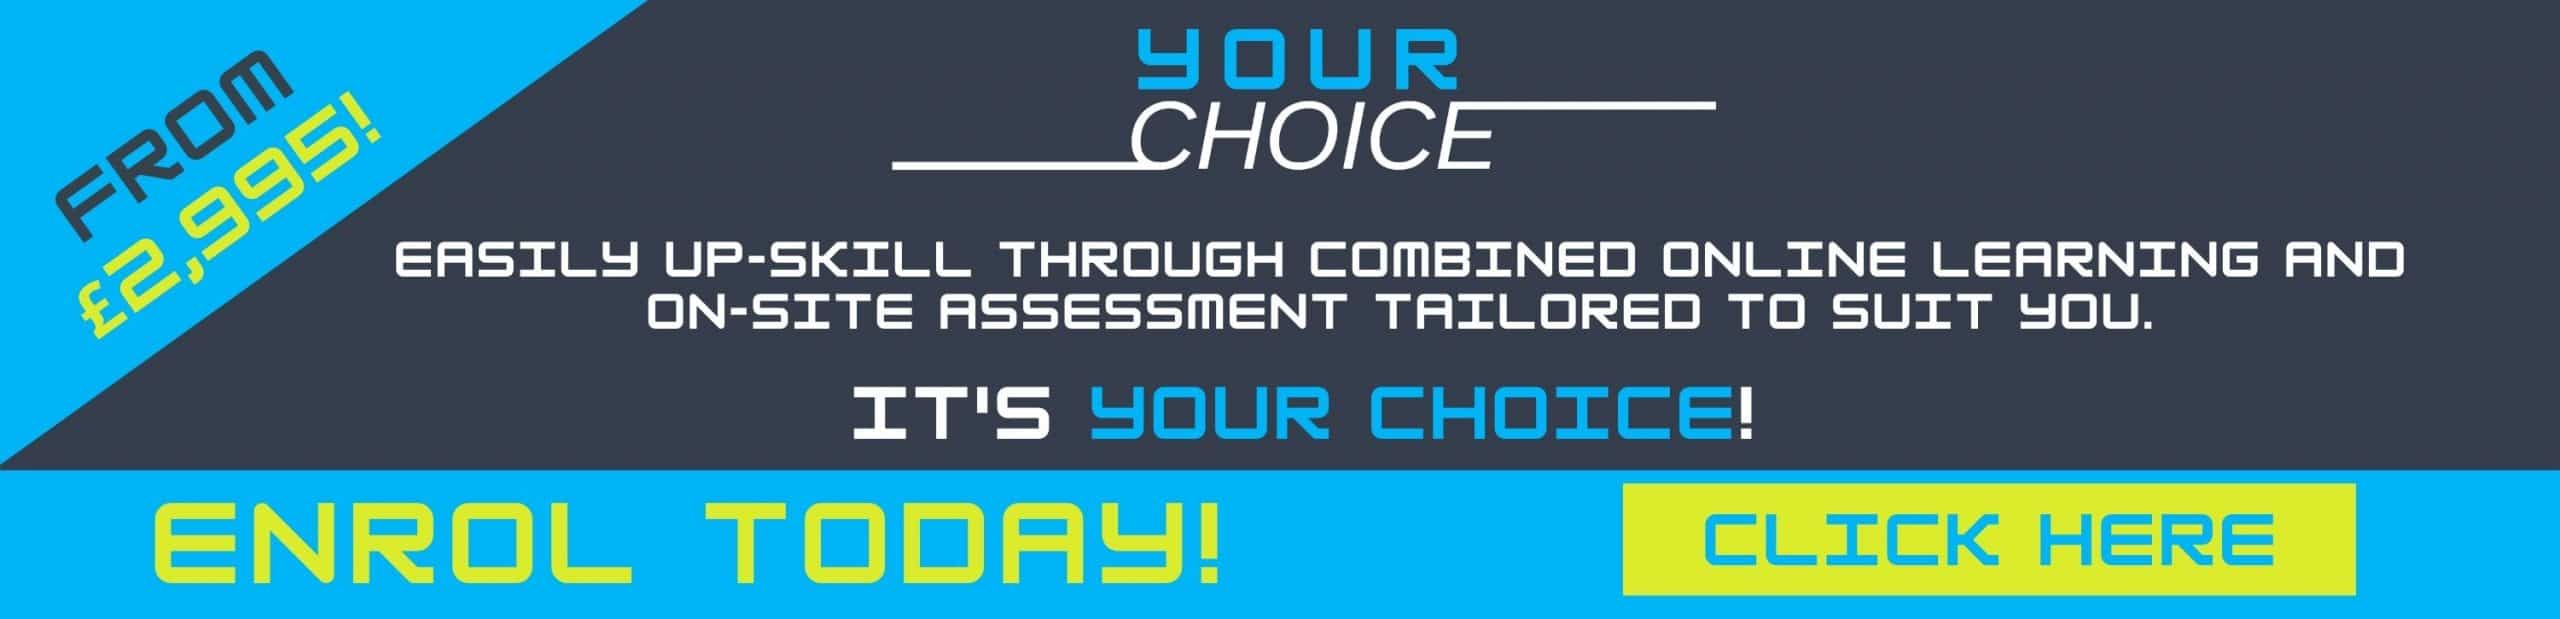 YOUR CHOICE by Choice Training Home page slide 4 Online NVQ info